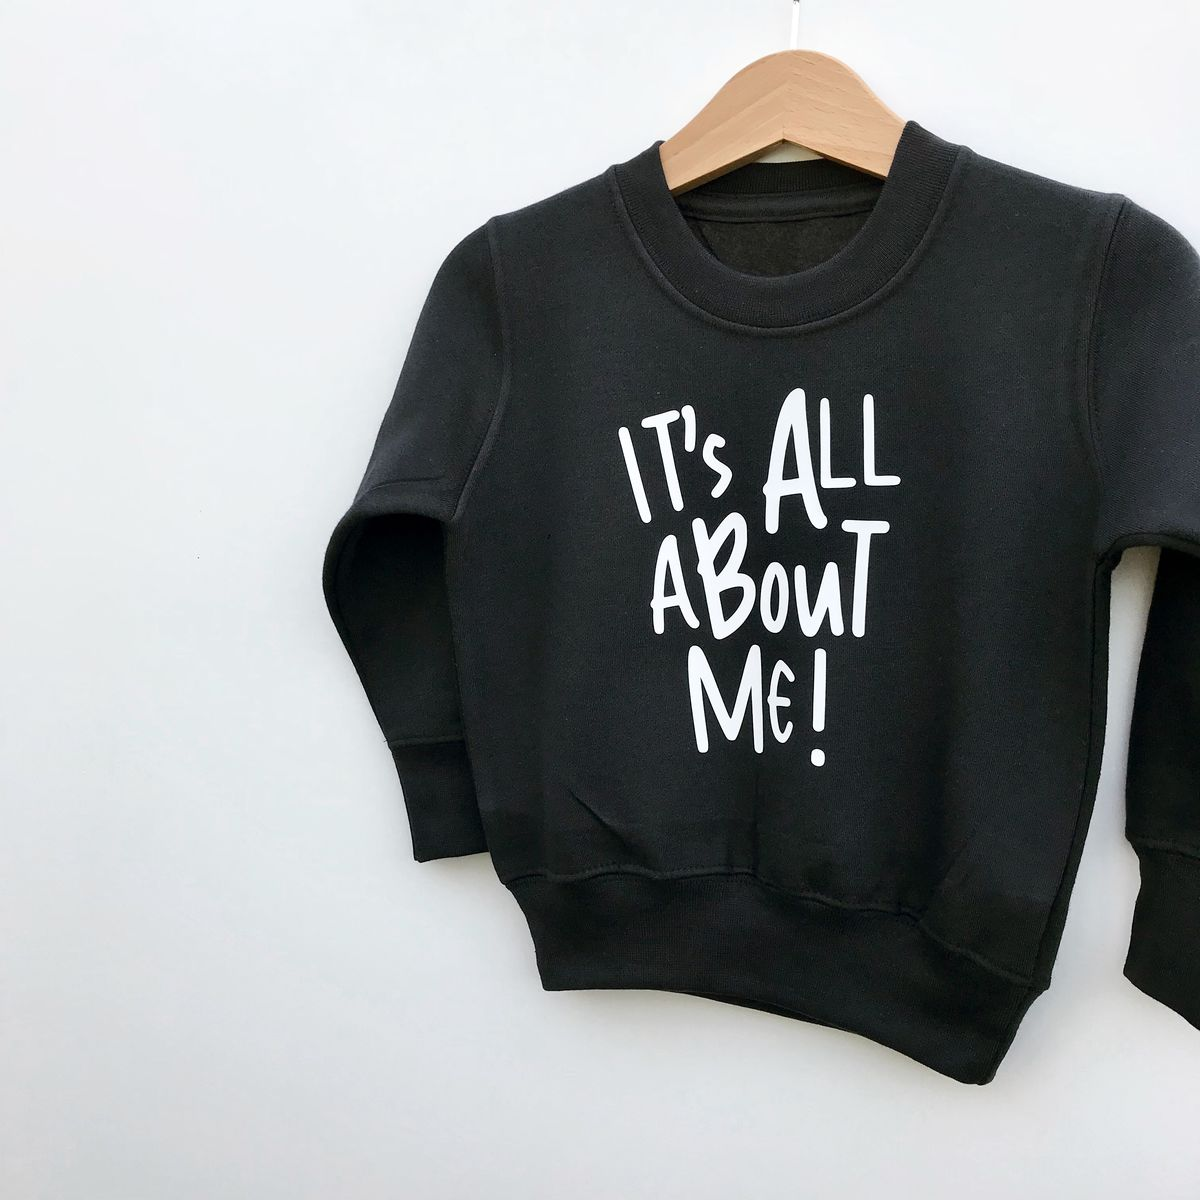 'It's All About Me' Kids Sweatshirt (various sizes) - product images  of